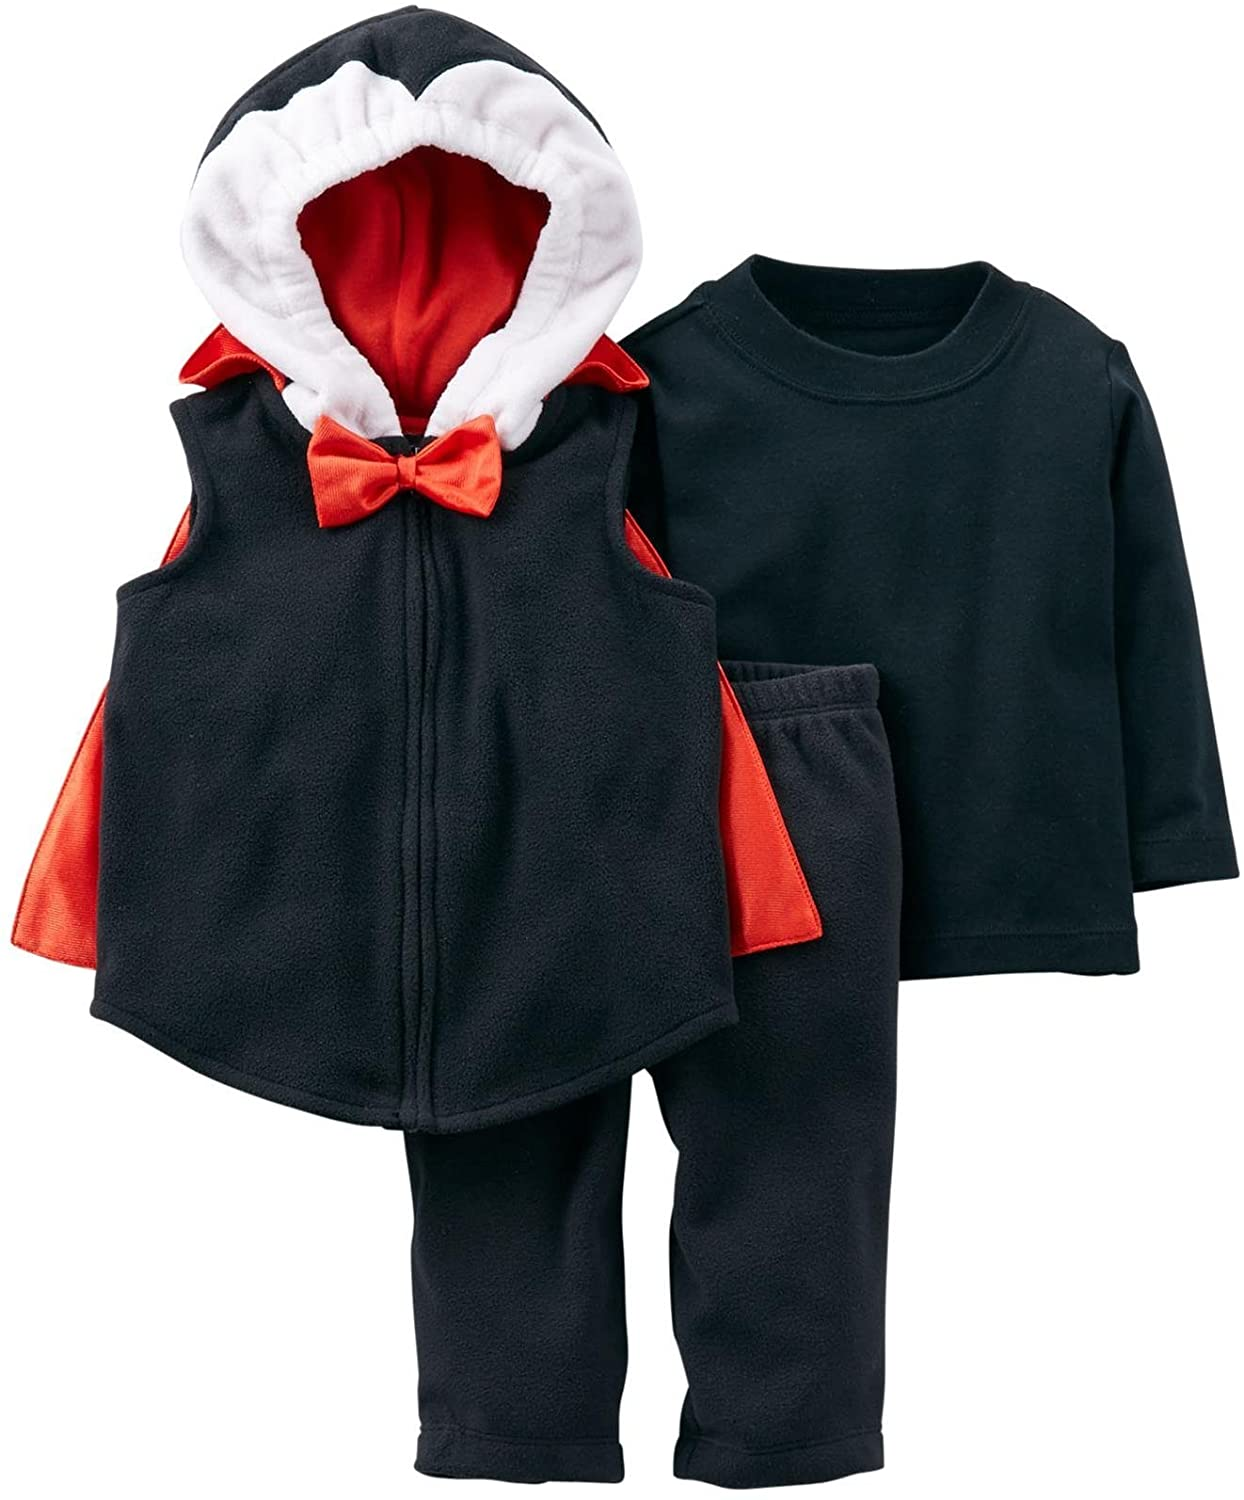 Carter's Baby Boys' Costumes